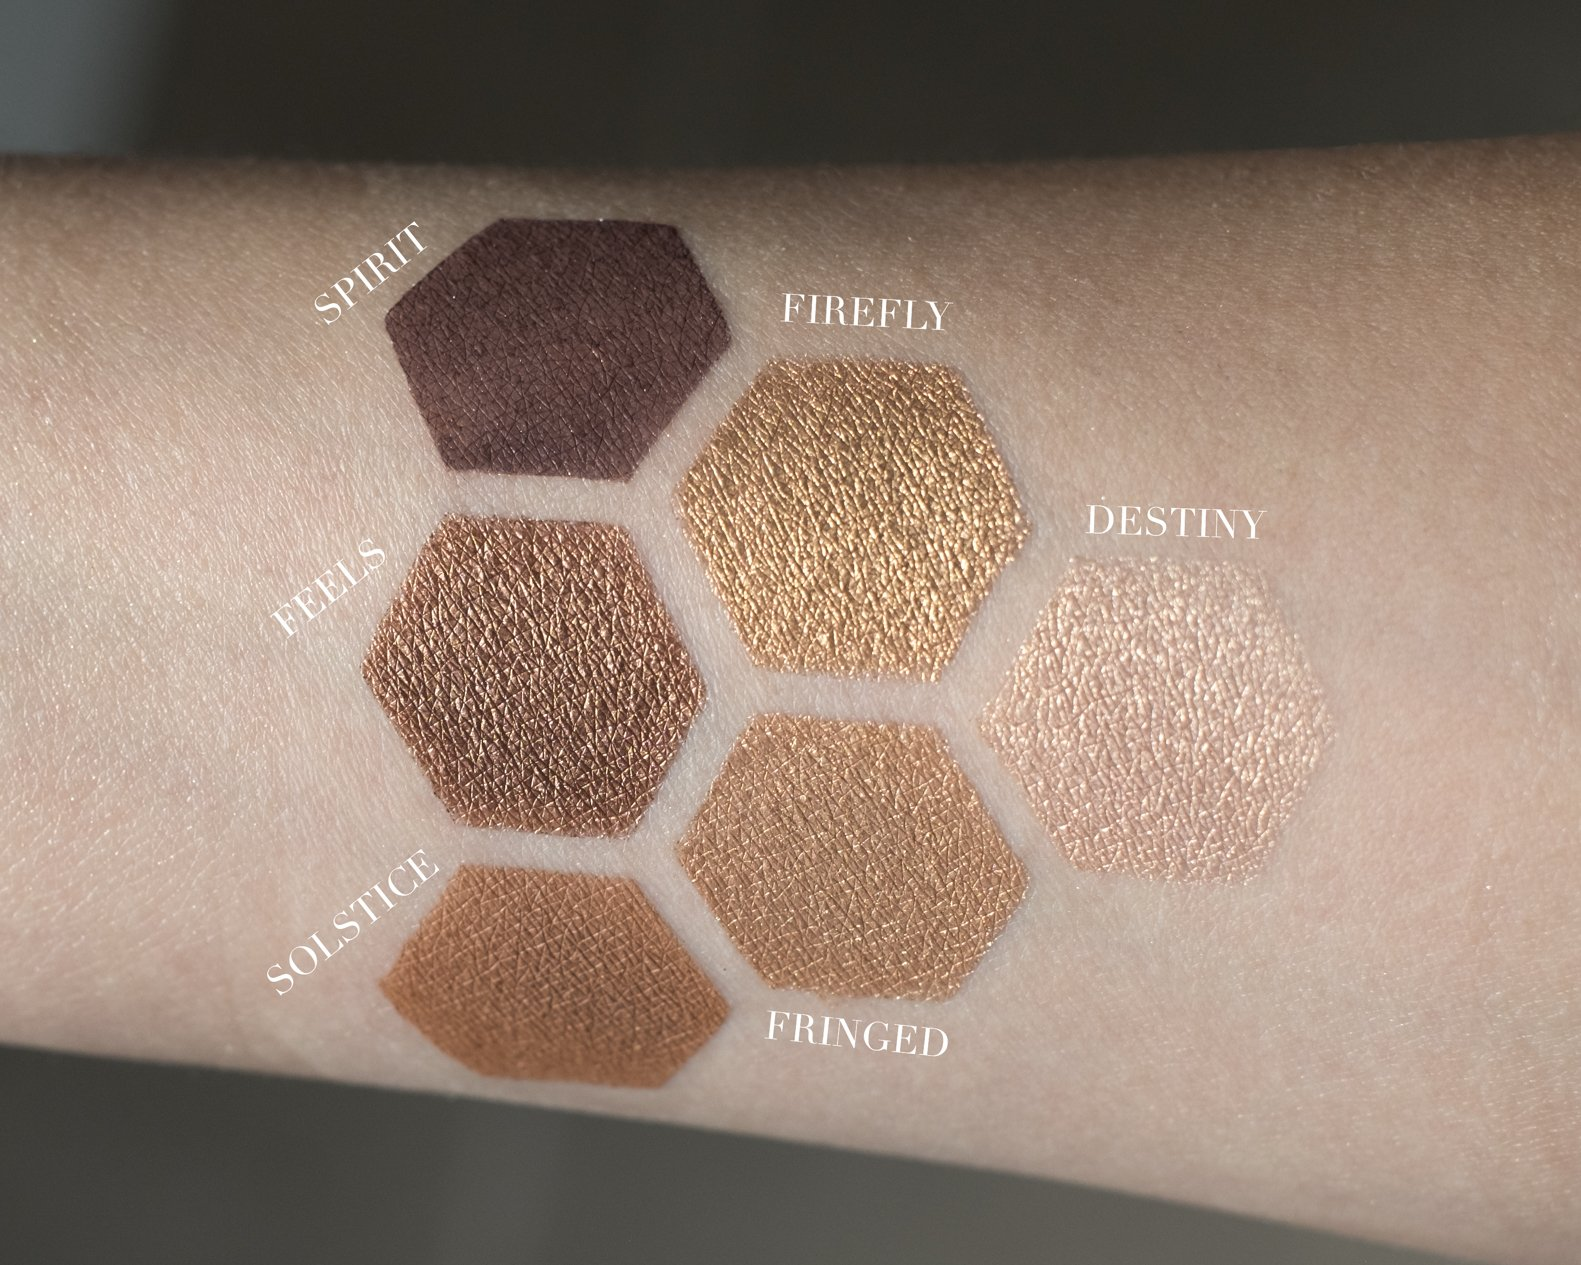 sunkissedblush-bareminerals-gennude-latte-swatches (12 of 17)